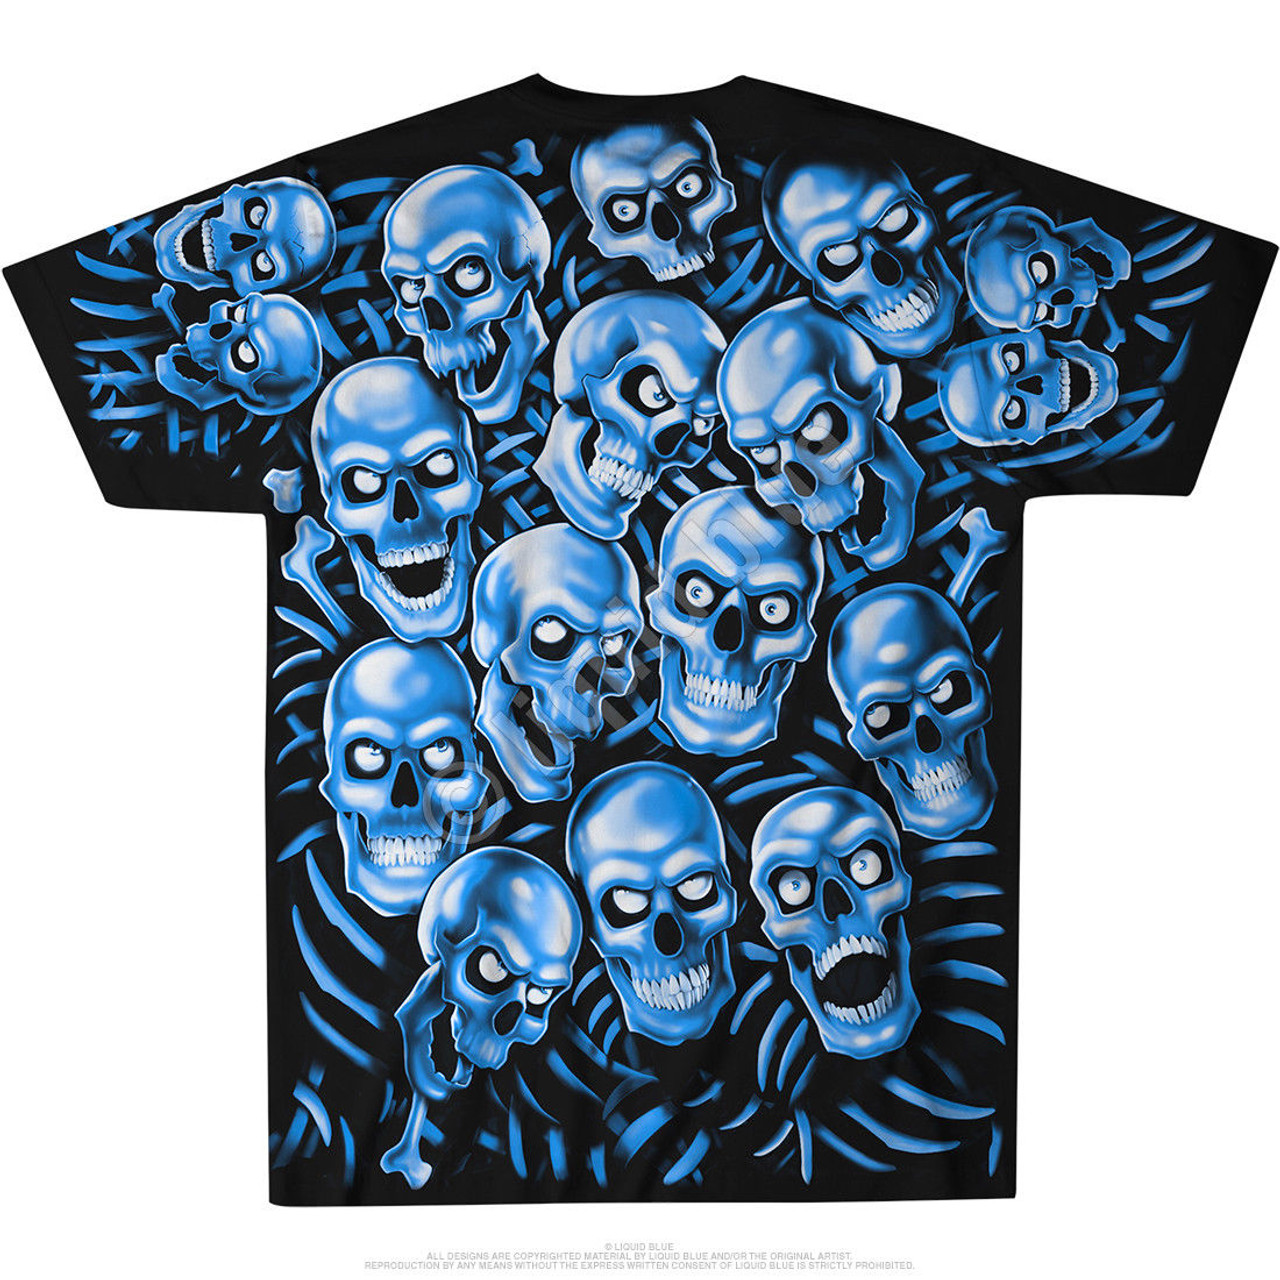 Juicy J Skull Pile Blue Skeletons Demon Ghoul Scary Punk Goth Tee Shirt  31736 - Fearless Apparel cf8e0bc8f